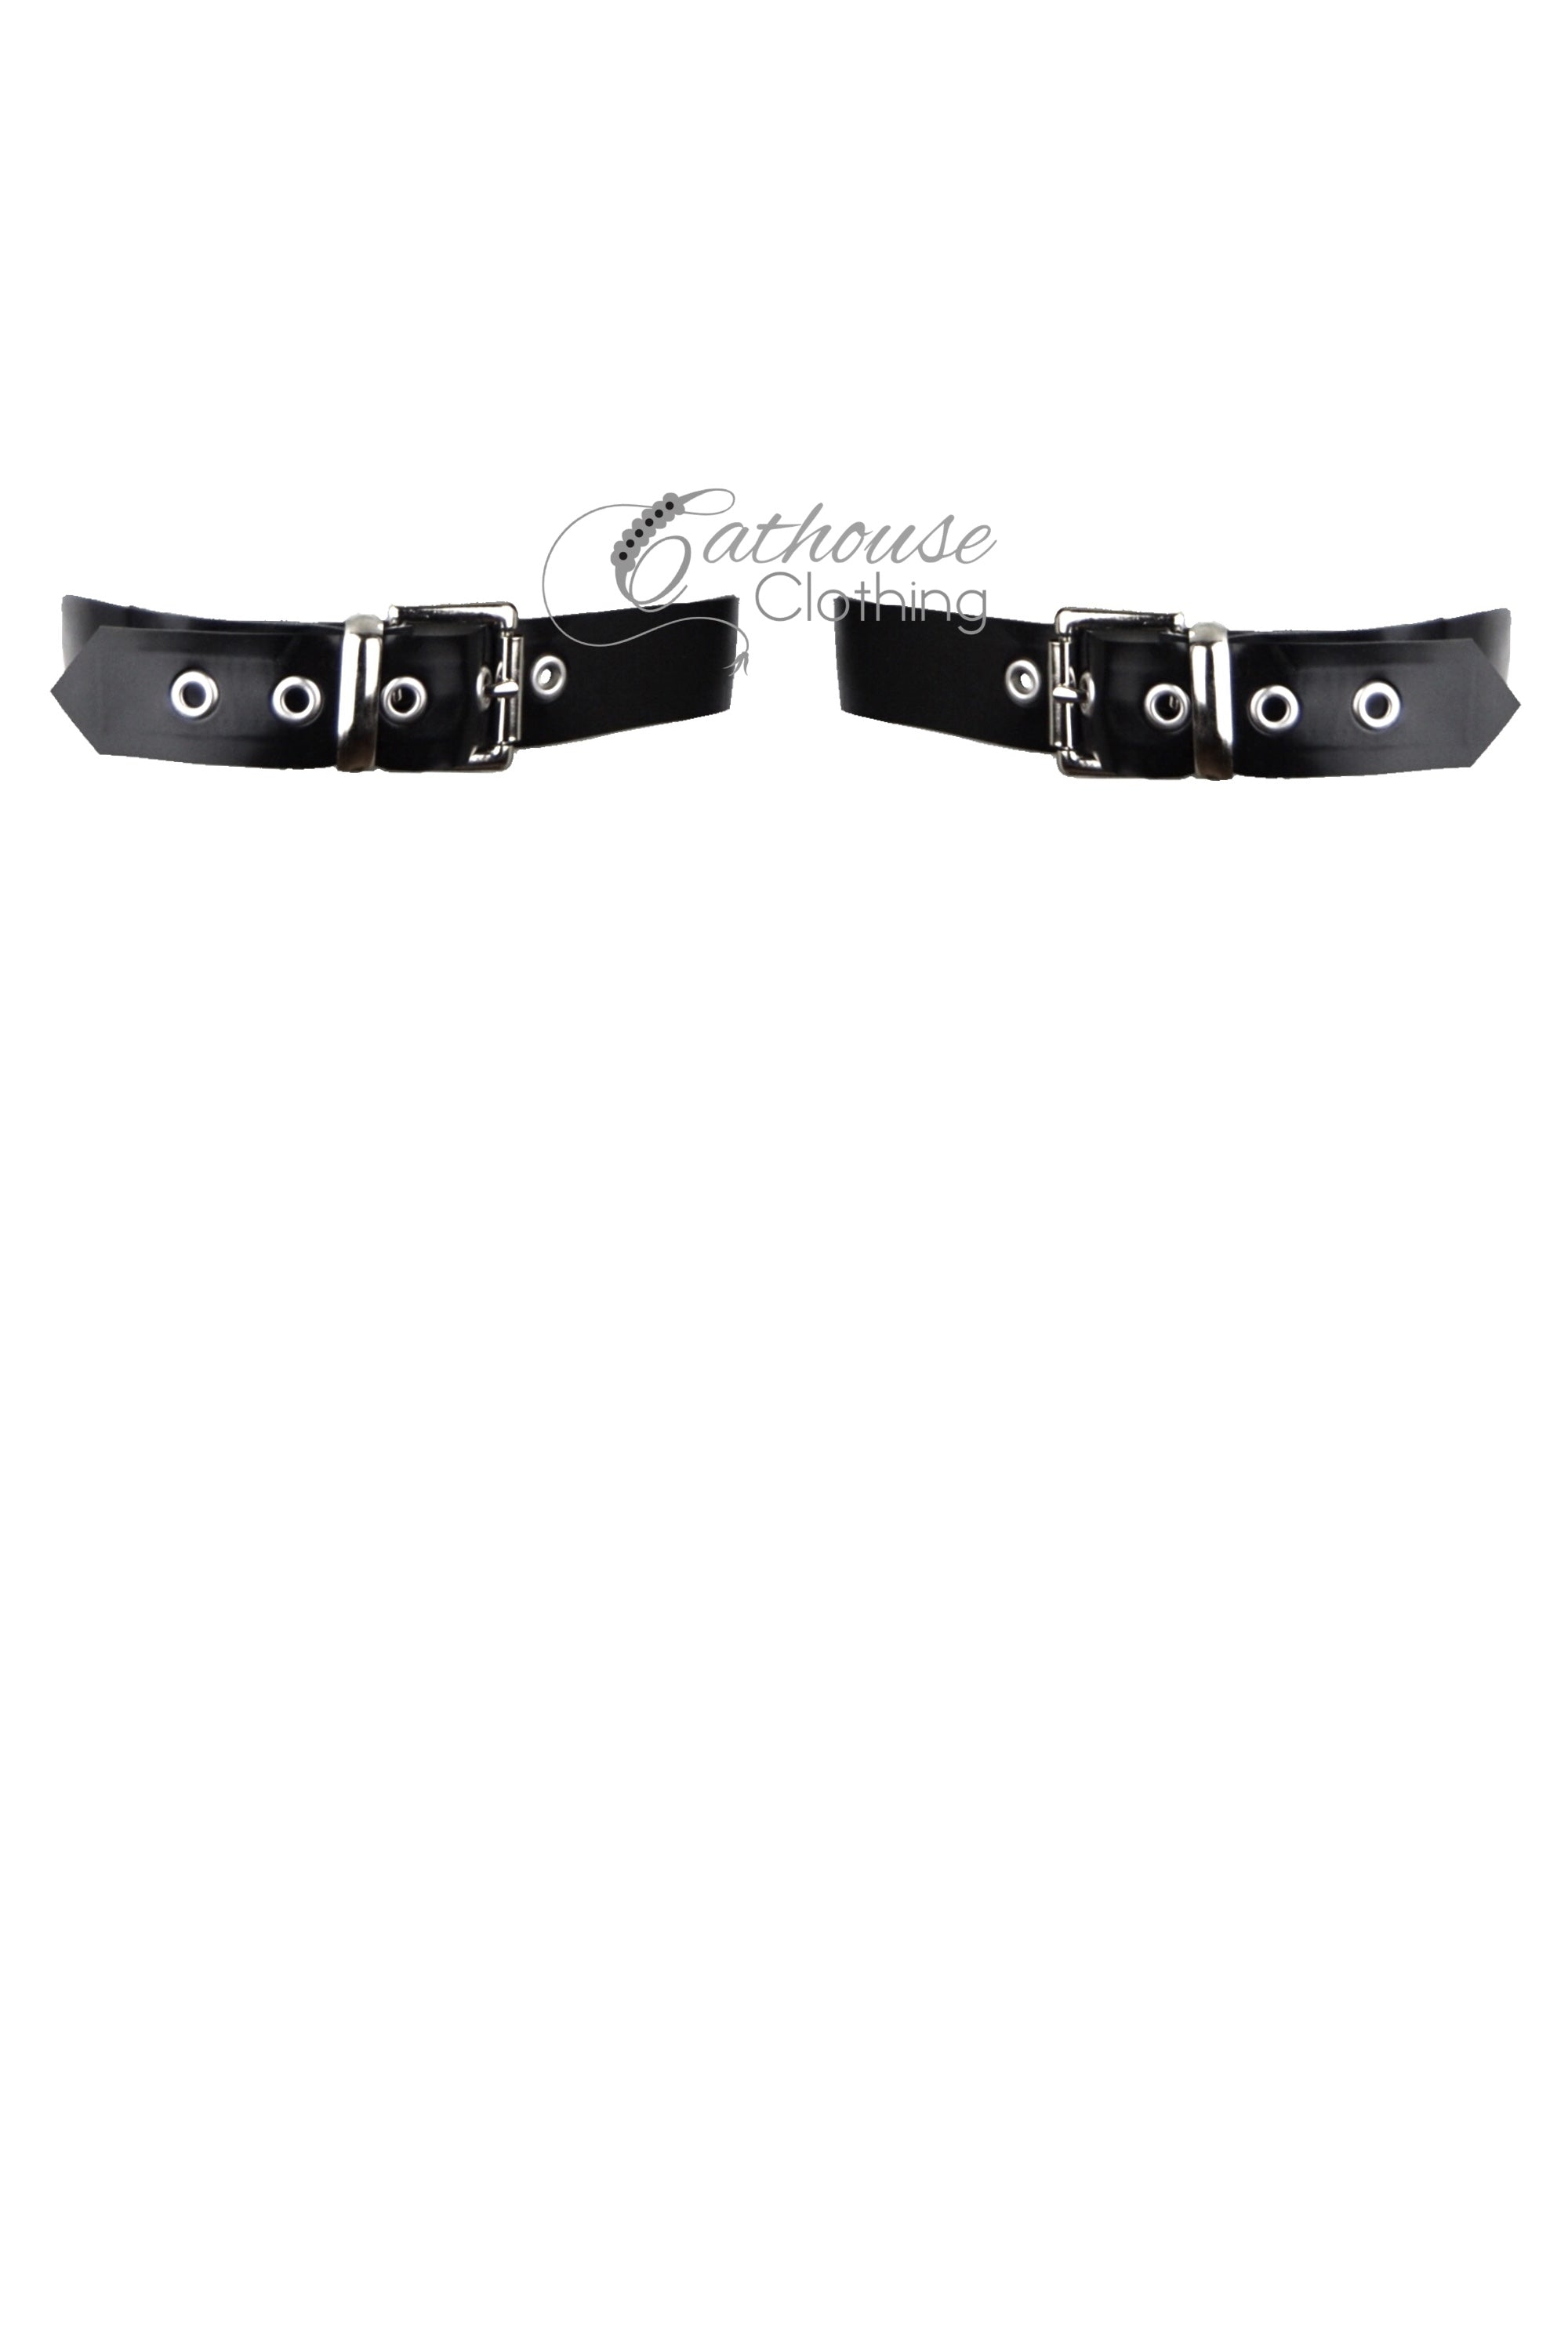 Vixen buckle thigh straps